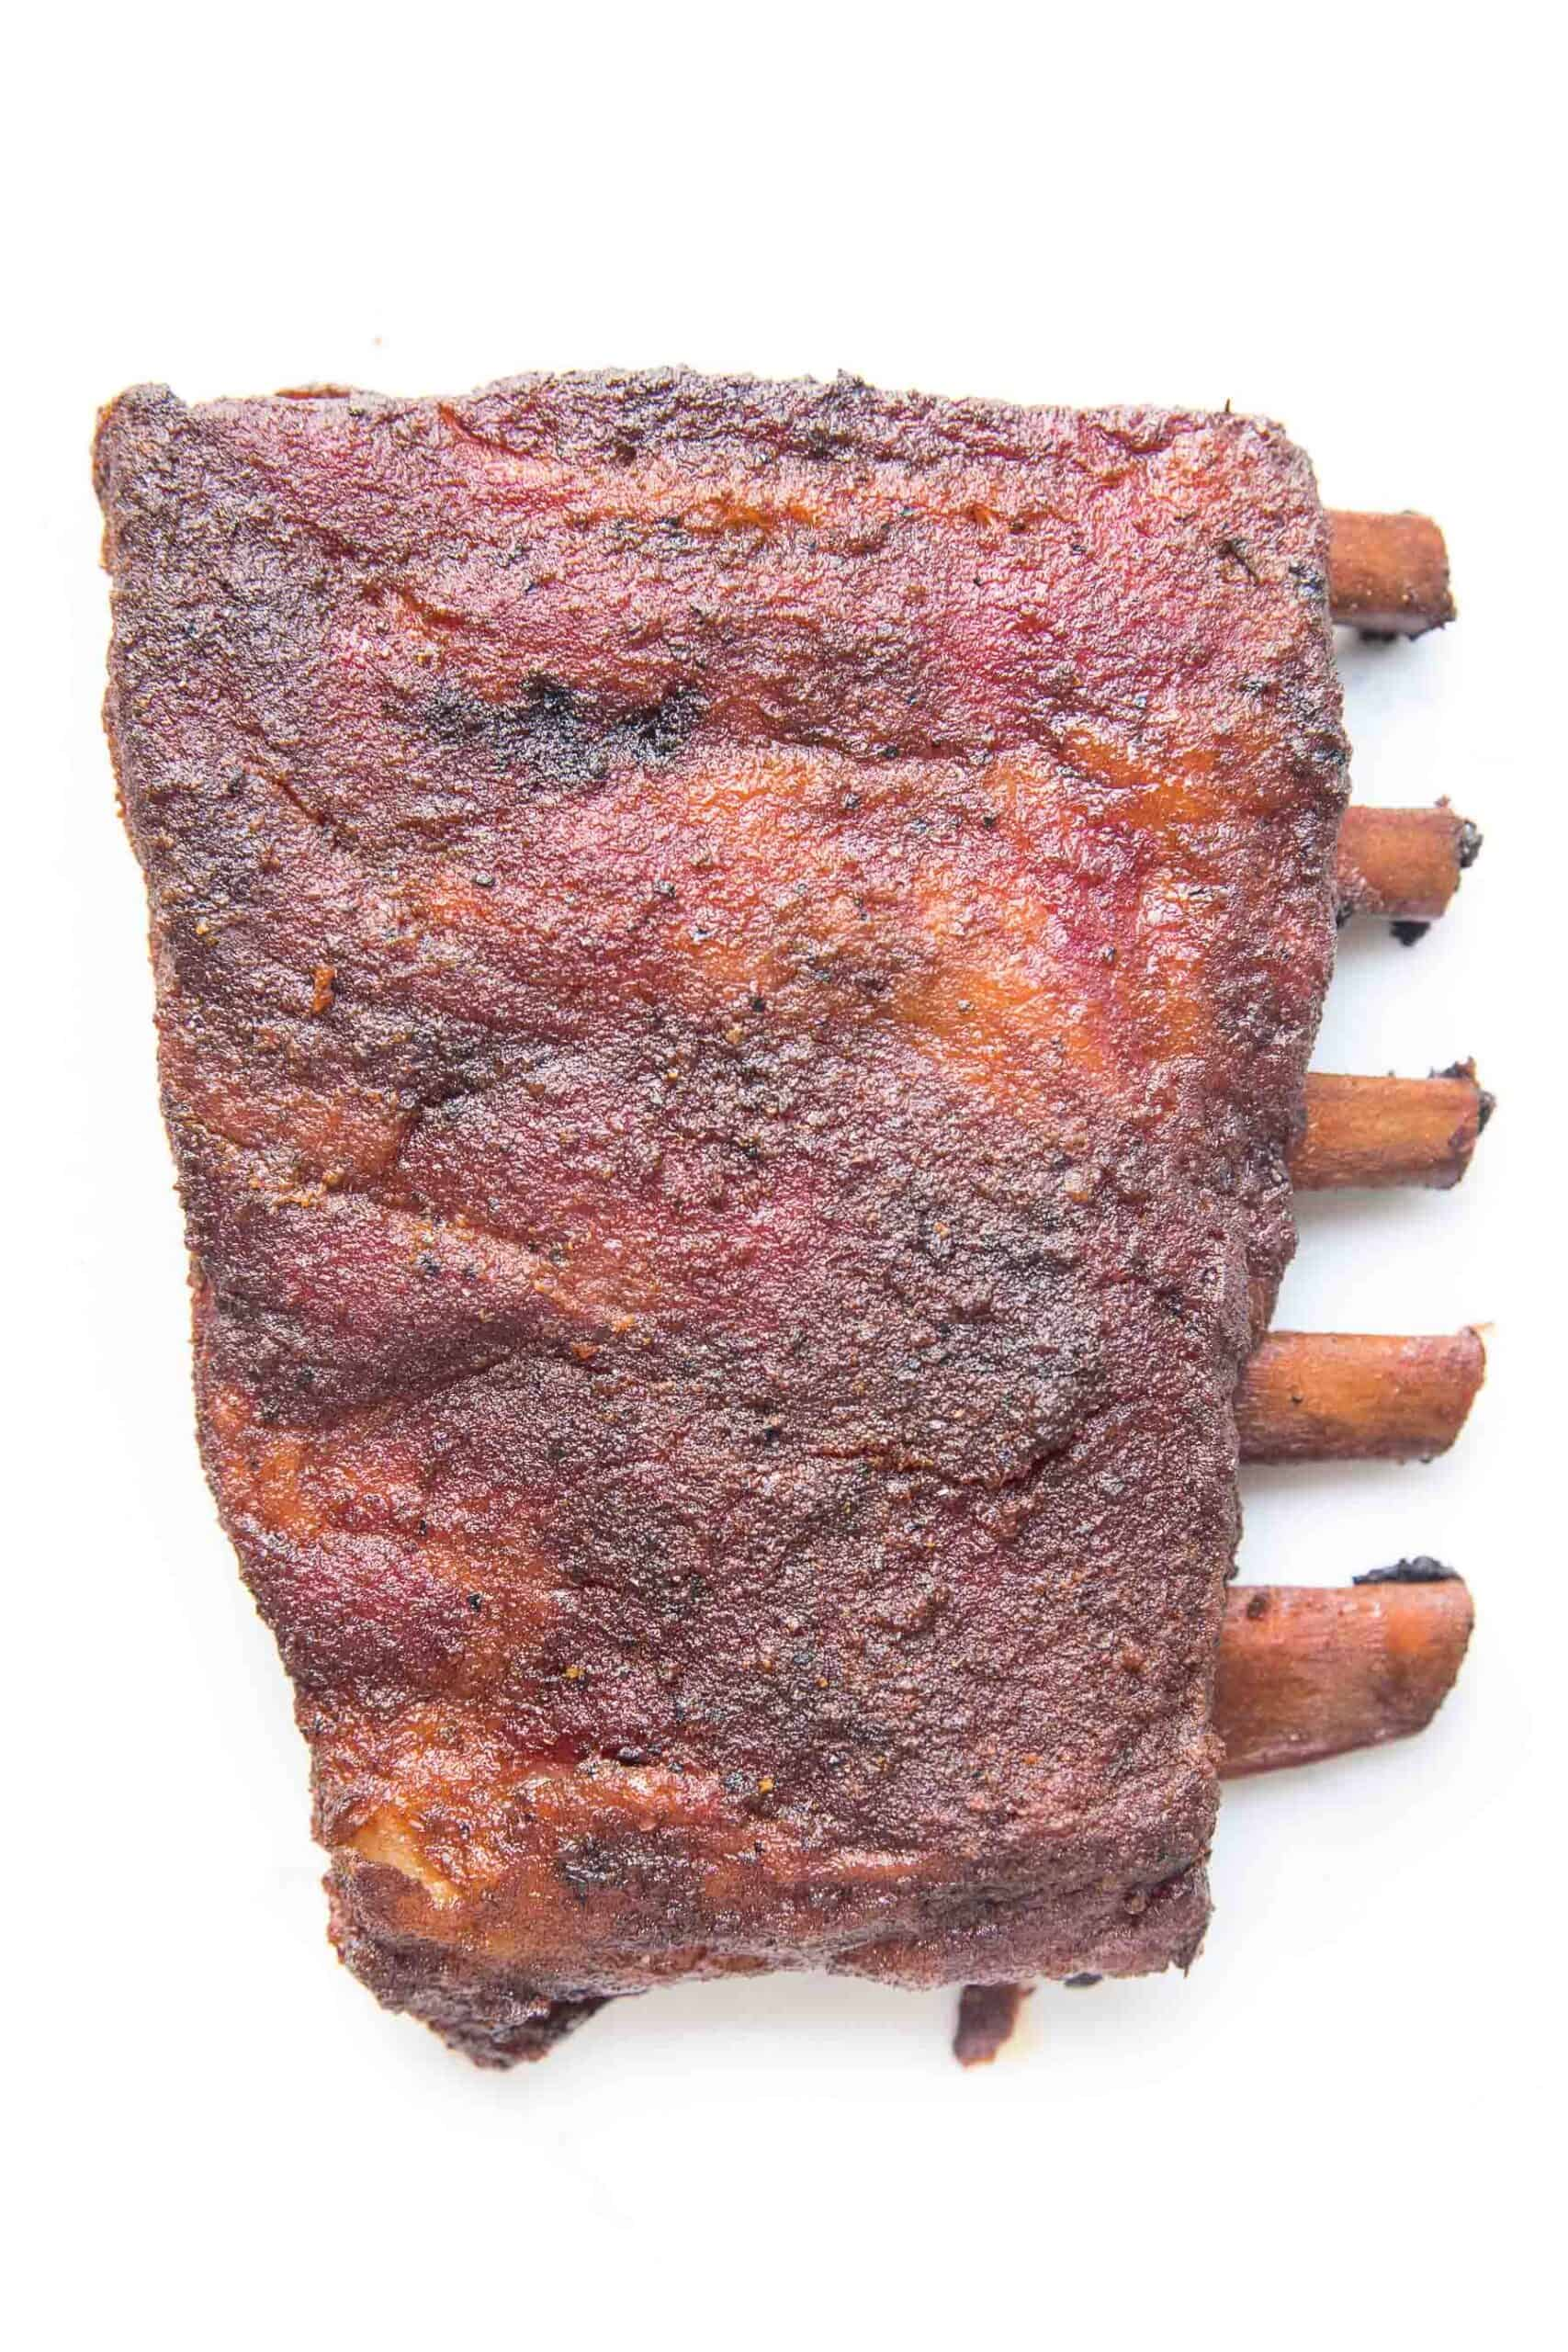 smoked ribs on a white background